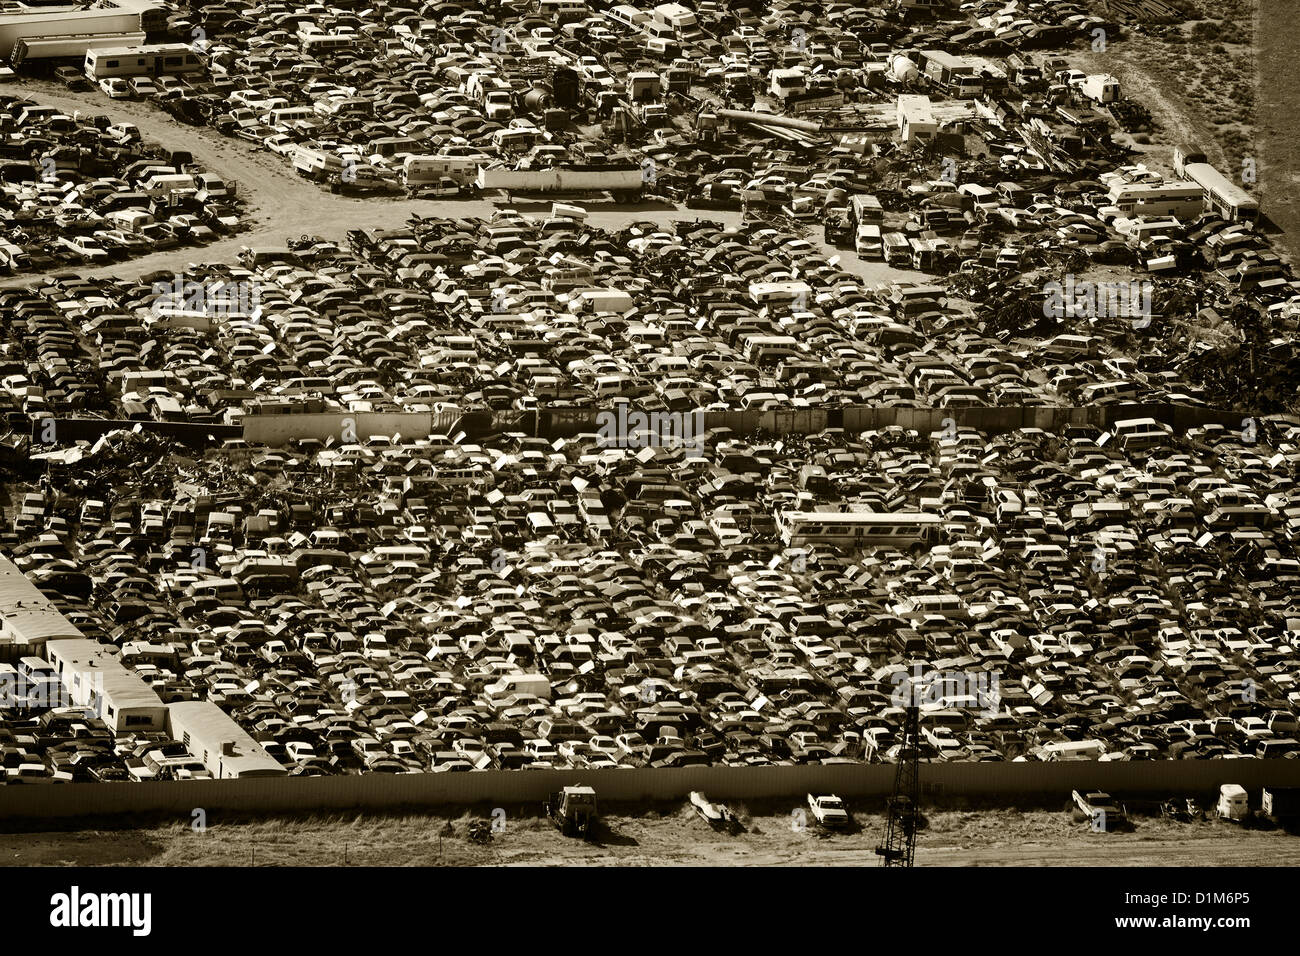 aerial photograph automobile junkyard southern Wyoming - Stock Image